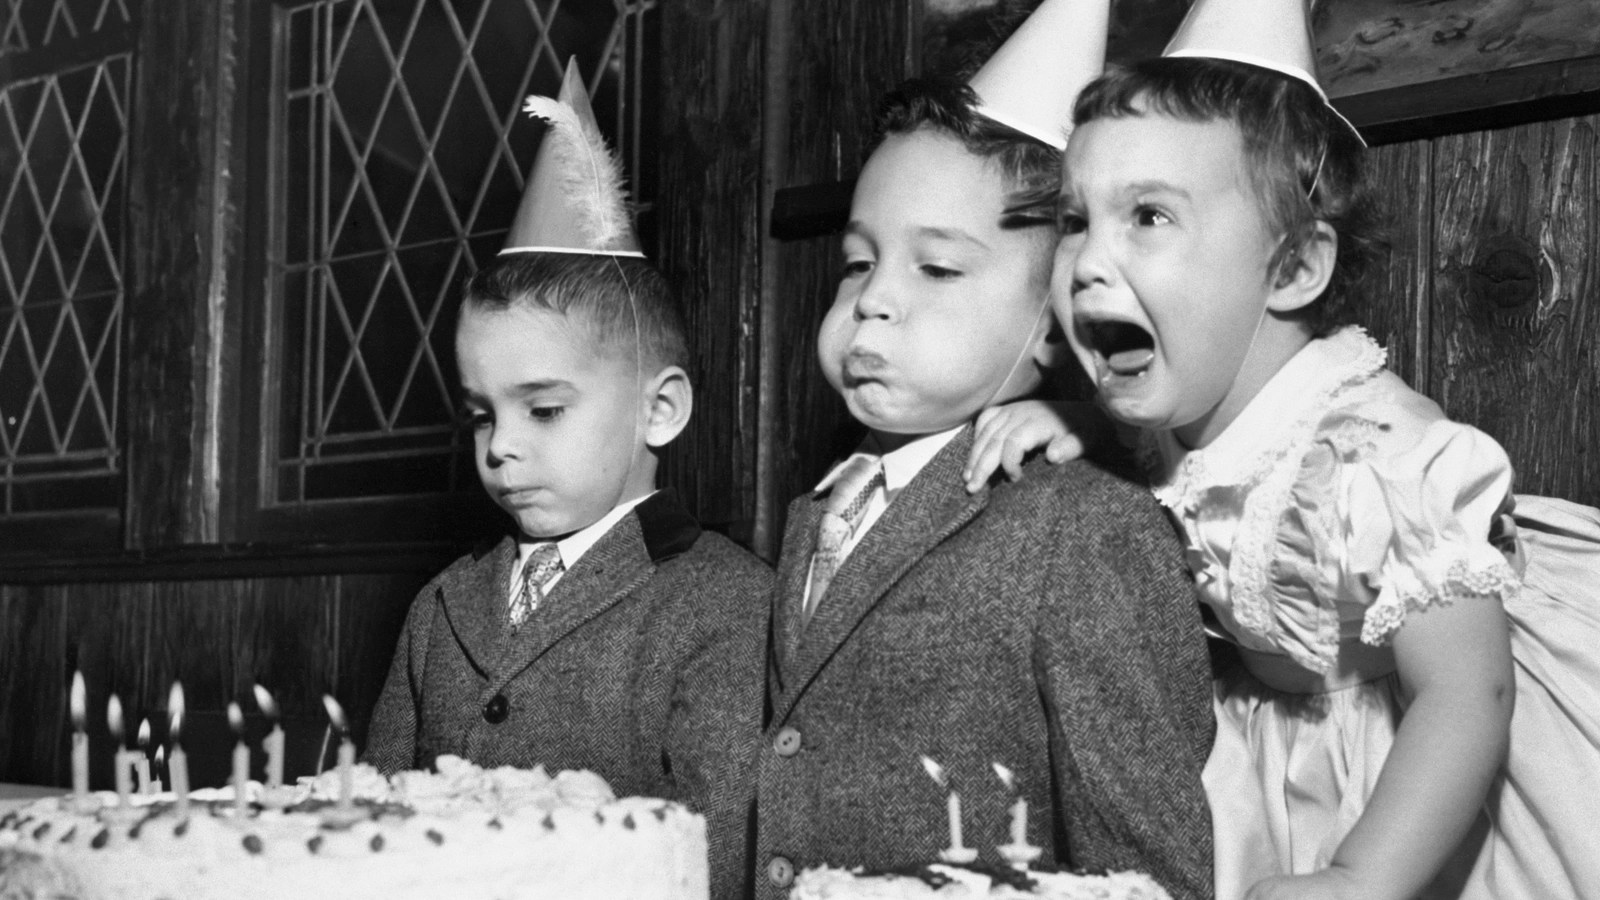 Blowing Out Birthday Candles Increases Cake Bacteria By 1 400 Percent The Atlantic